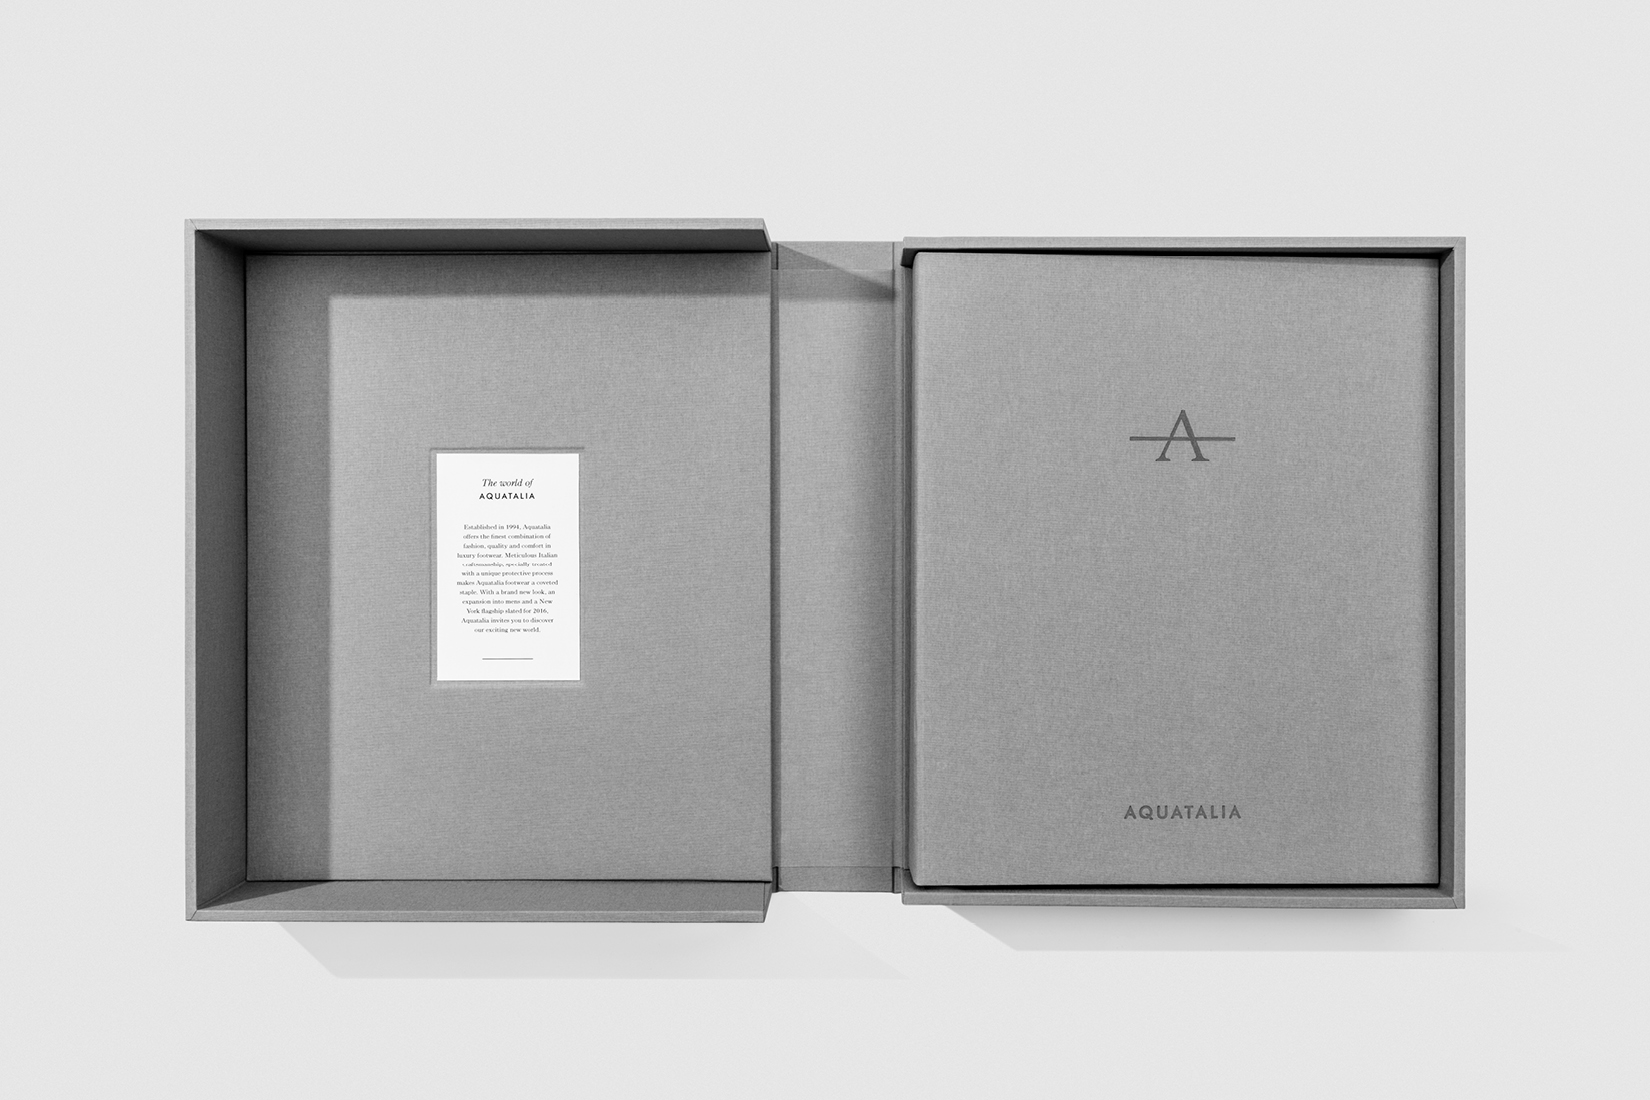 Aquatalia brand book designed and produced by DTE Studio as part of the 360 degree rebranding project.